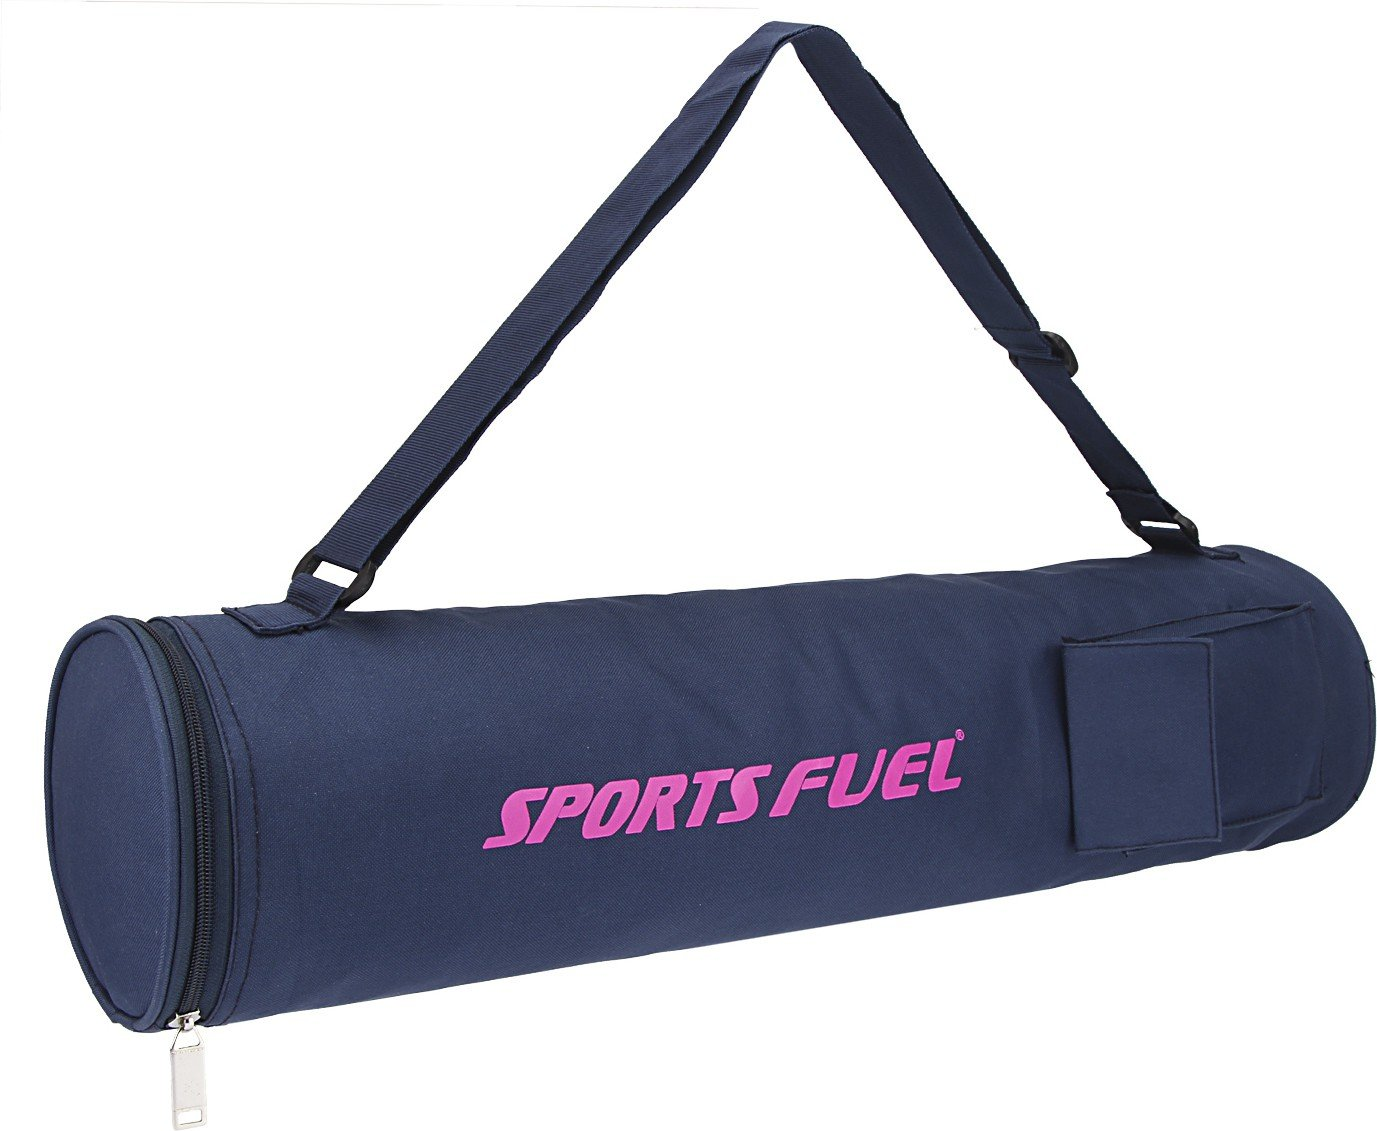 4ec8e17ea1e Sport Fuel 8907313008421 Nylon Fuel Yoga Mat Cover (Pink): Amazon.in:  Sports, Fitness & Outdoors